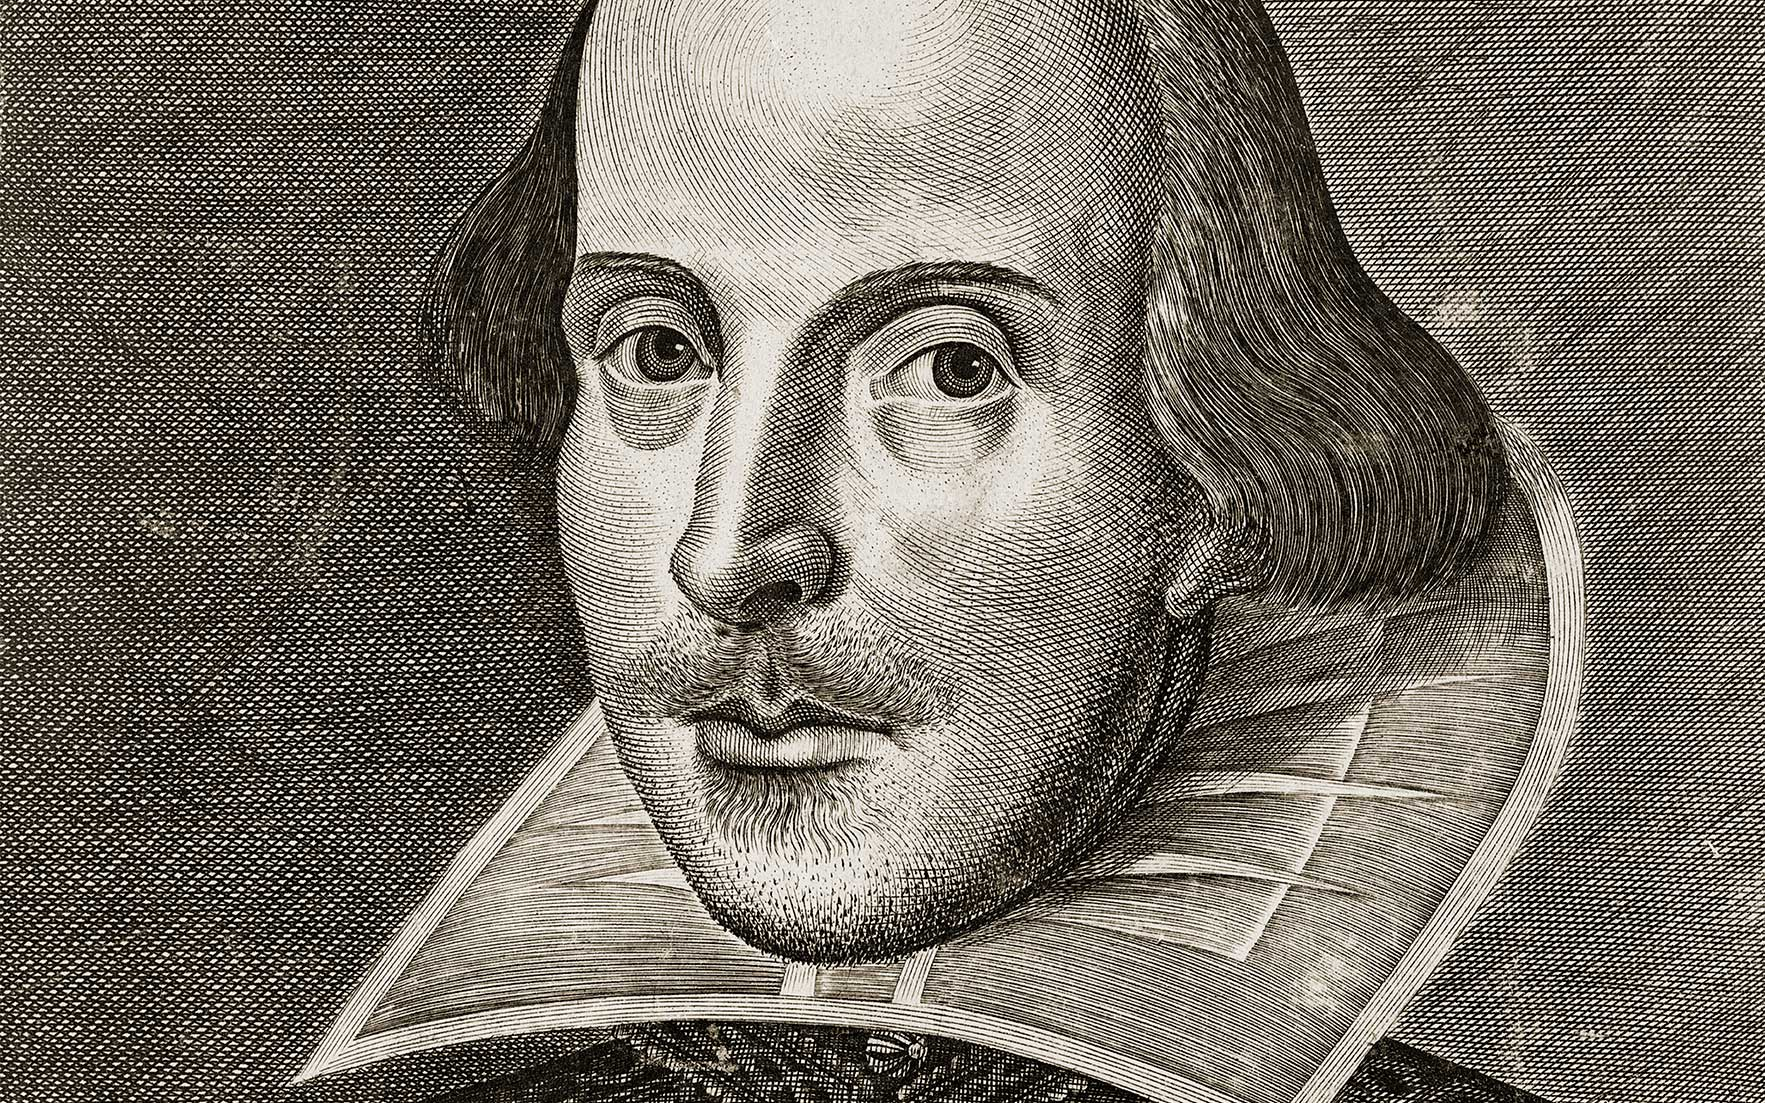 A landmark sale to mark the 400th anniversary of Shakespeare's death